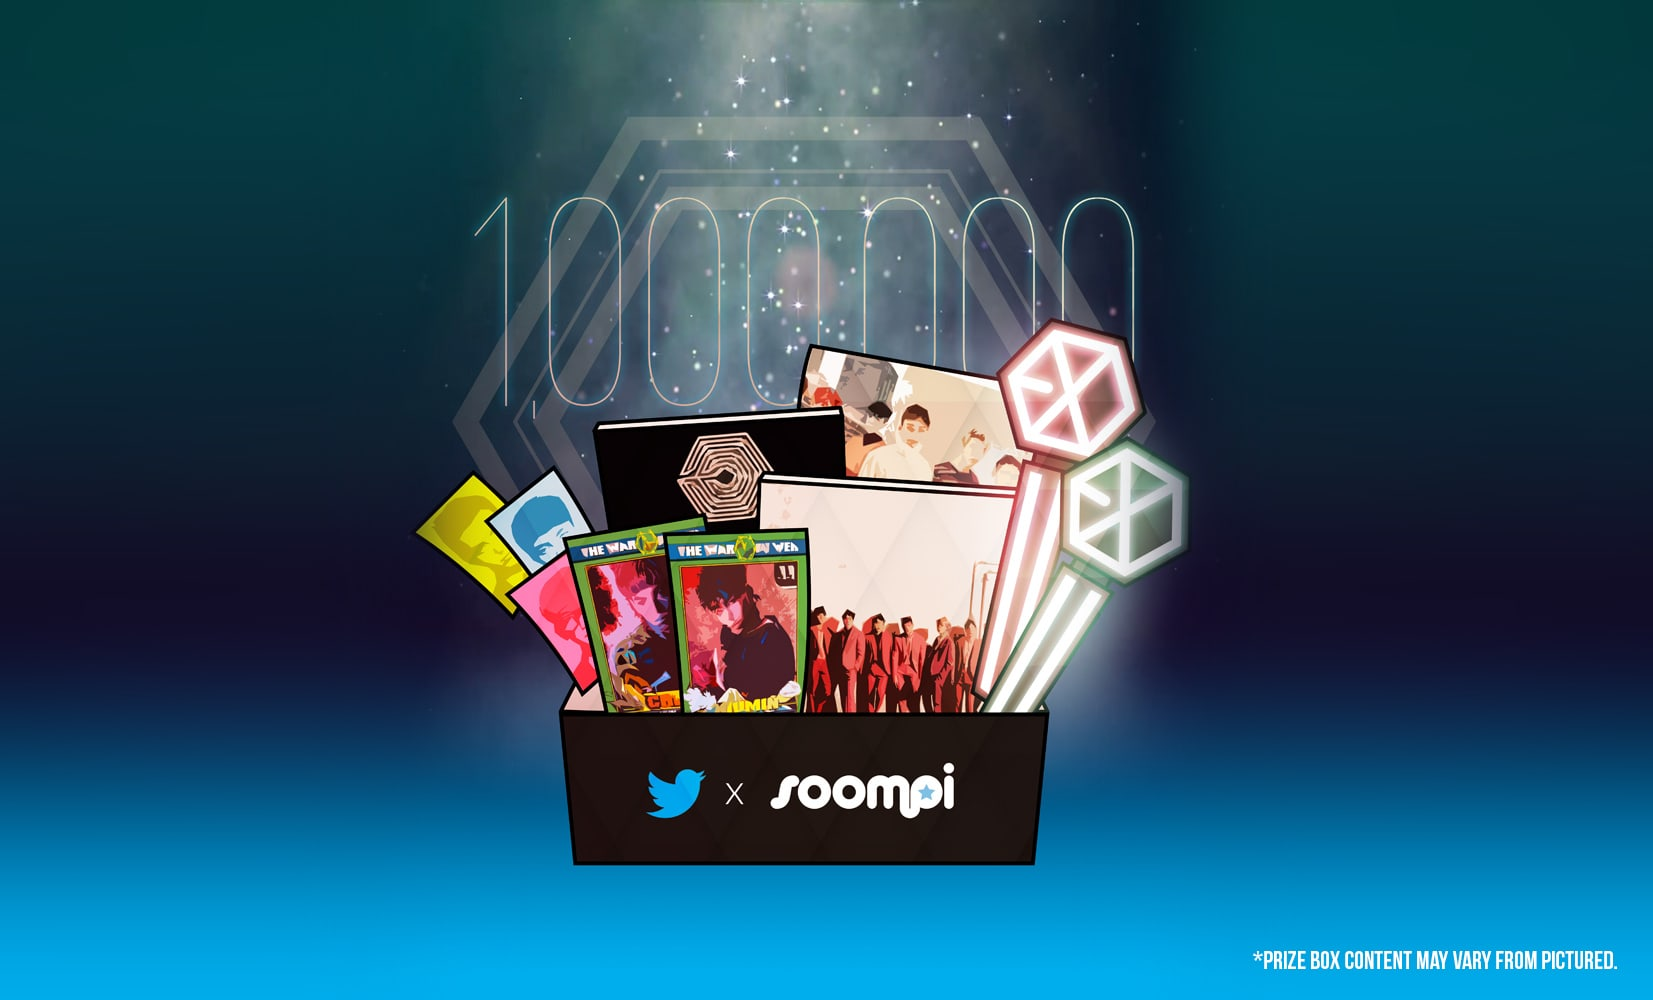 Soompi And Twitter Launch Global Fan Art Competition To Celebrate EXO's One Million Followers Milestone